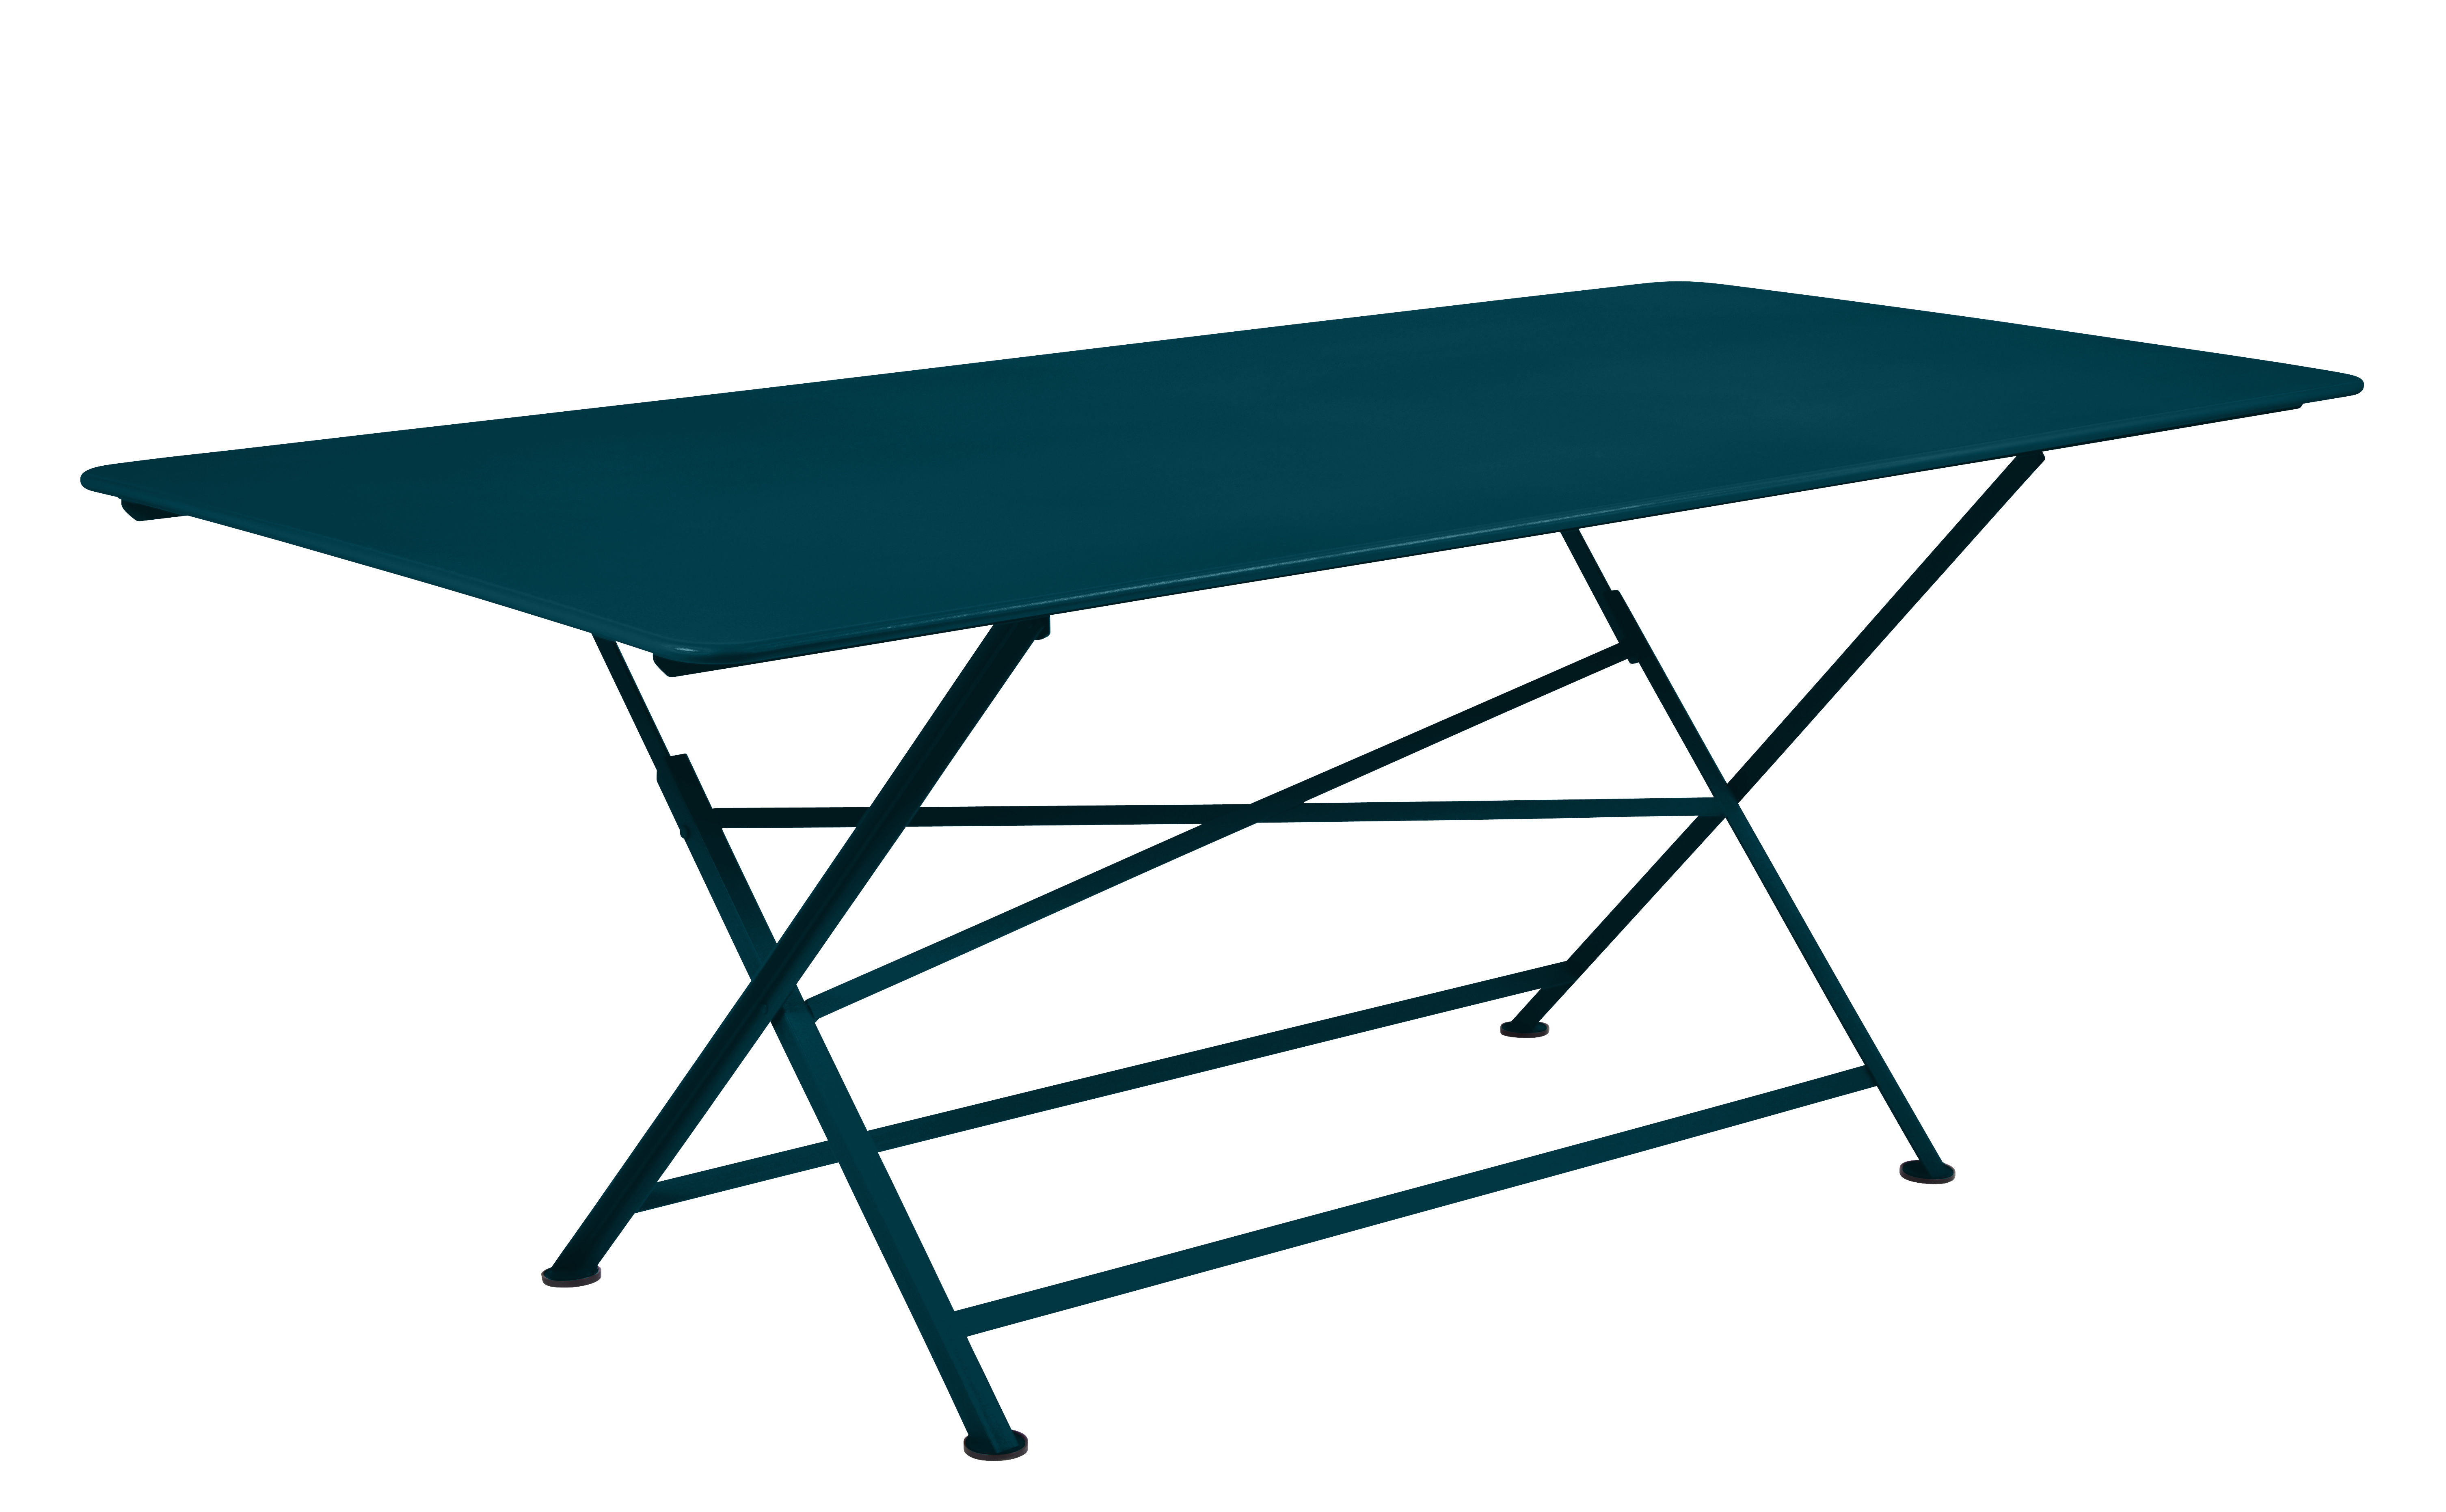 Outdoor - Garden Tables - Cargo Foldable table - / 90 x 190 cm by Fermob - Acapulco blue - Lacquered steel